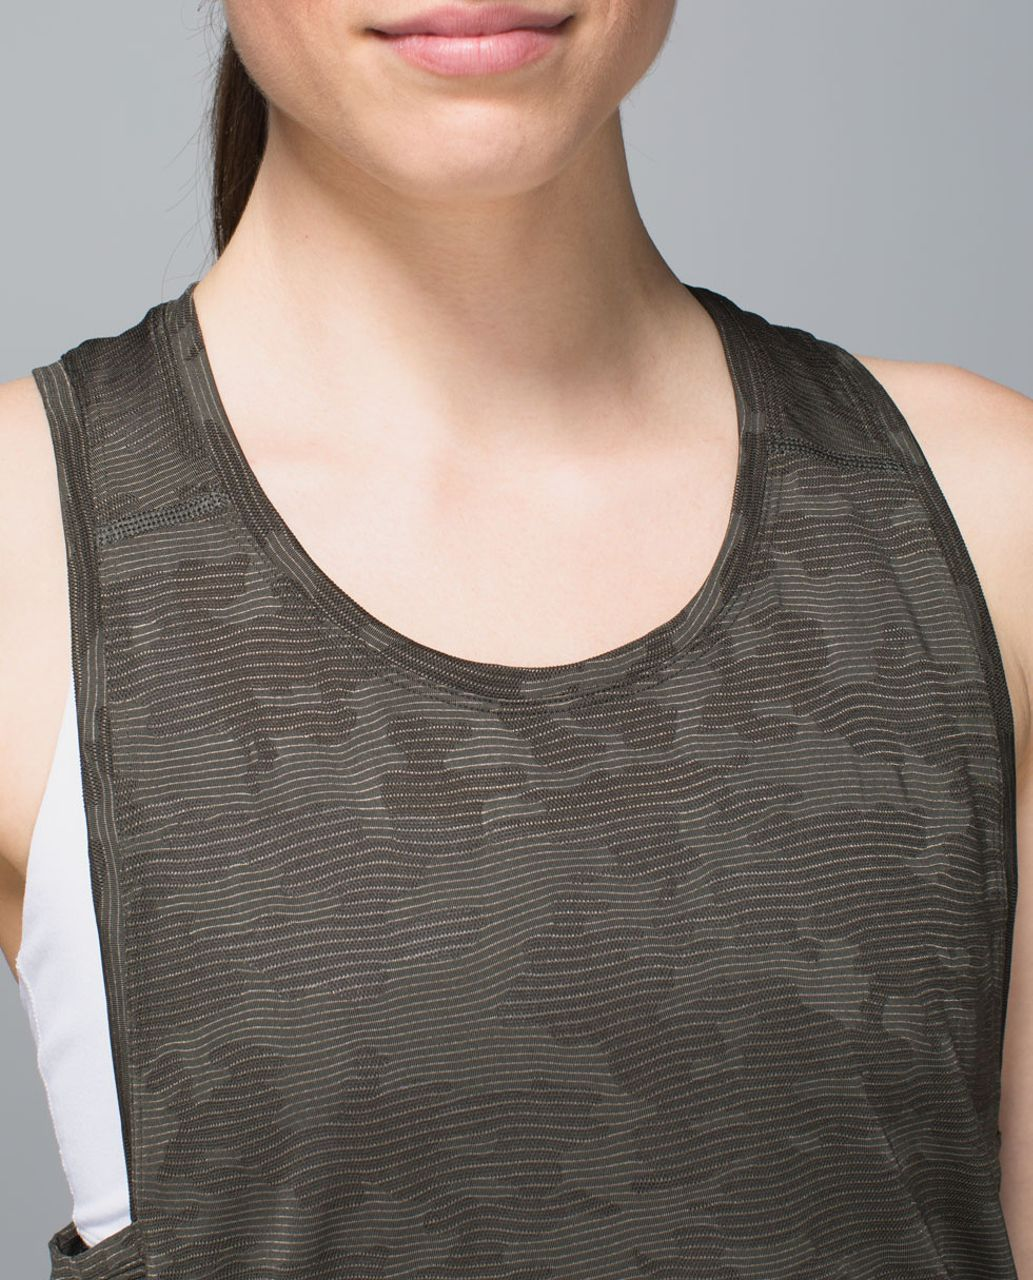 Lululemon Run For Days Tank - Deep Camo